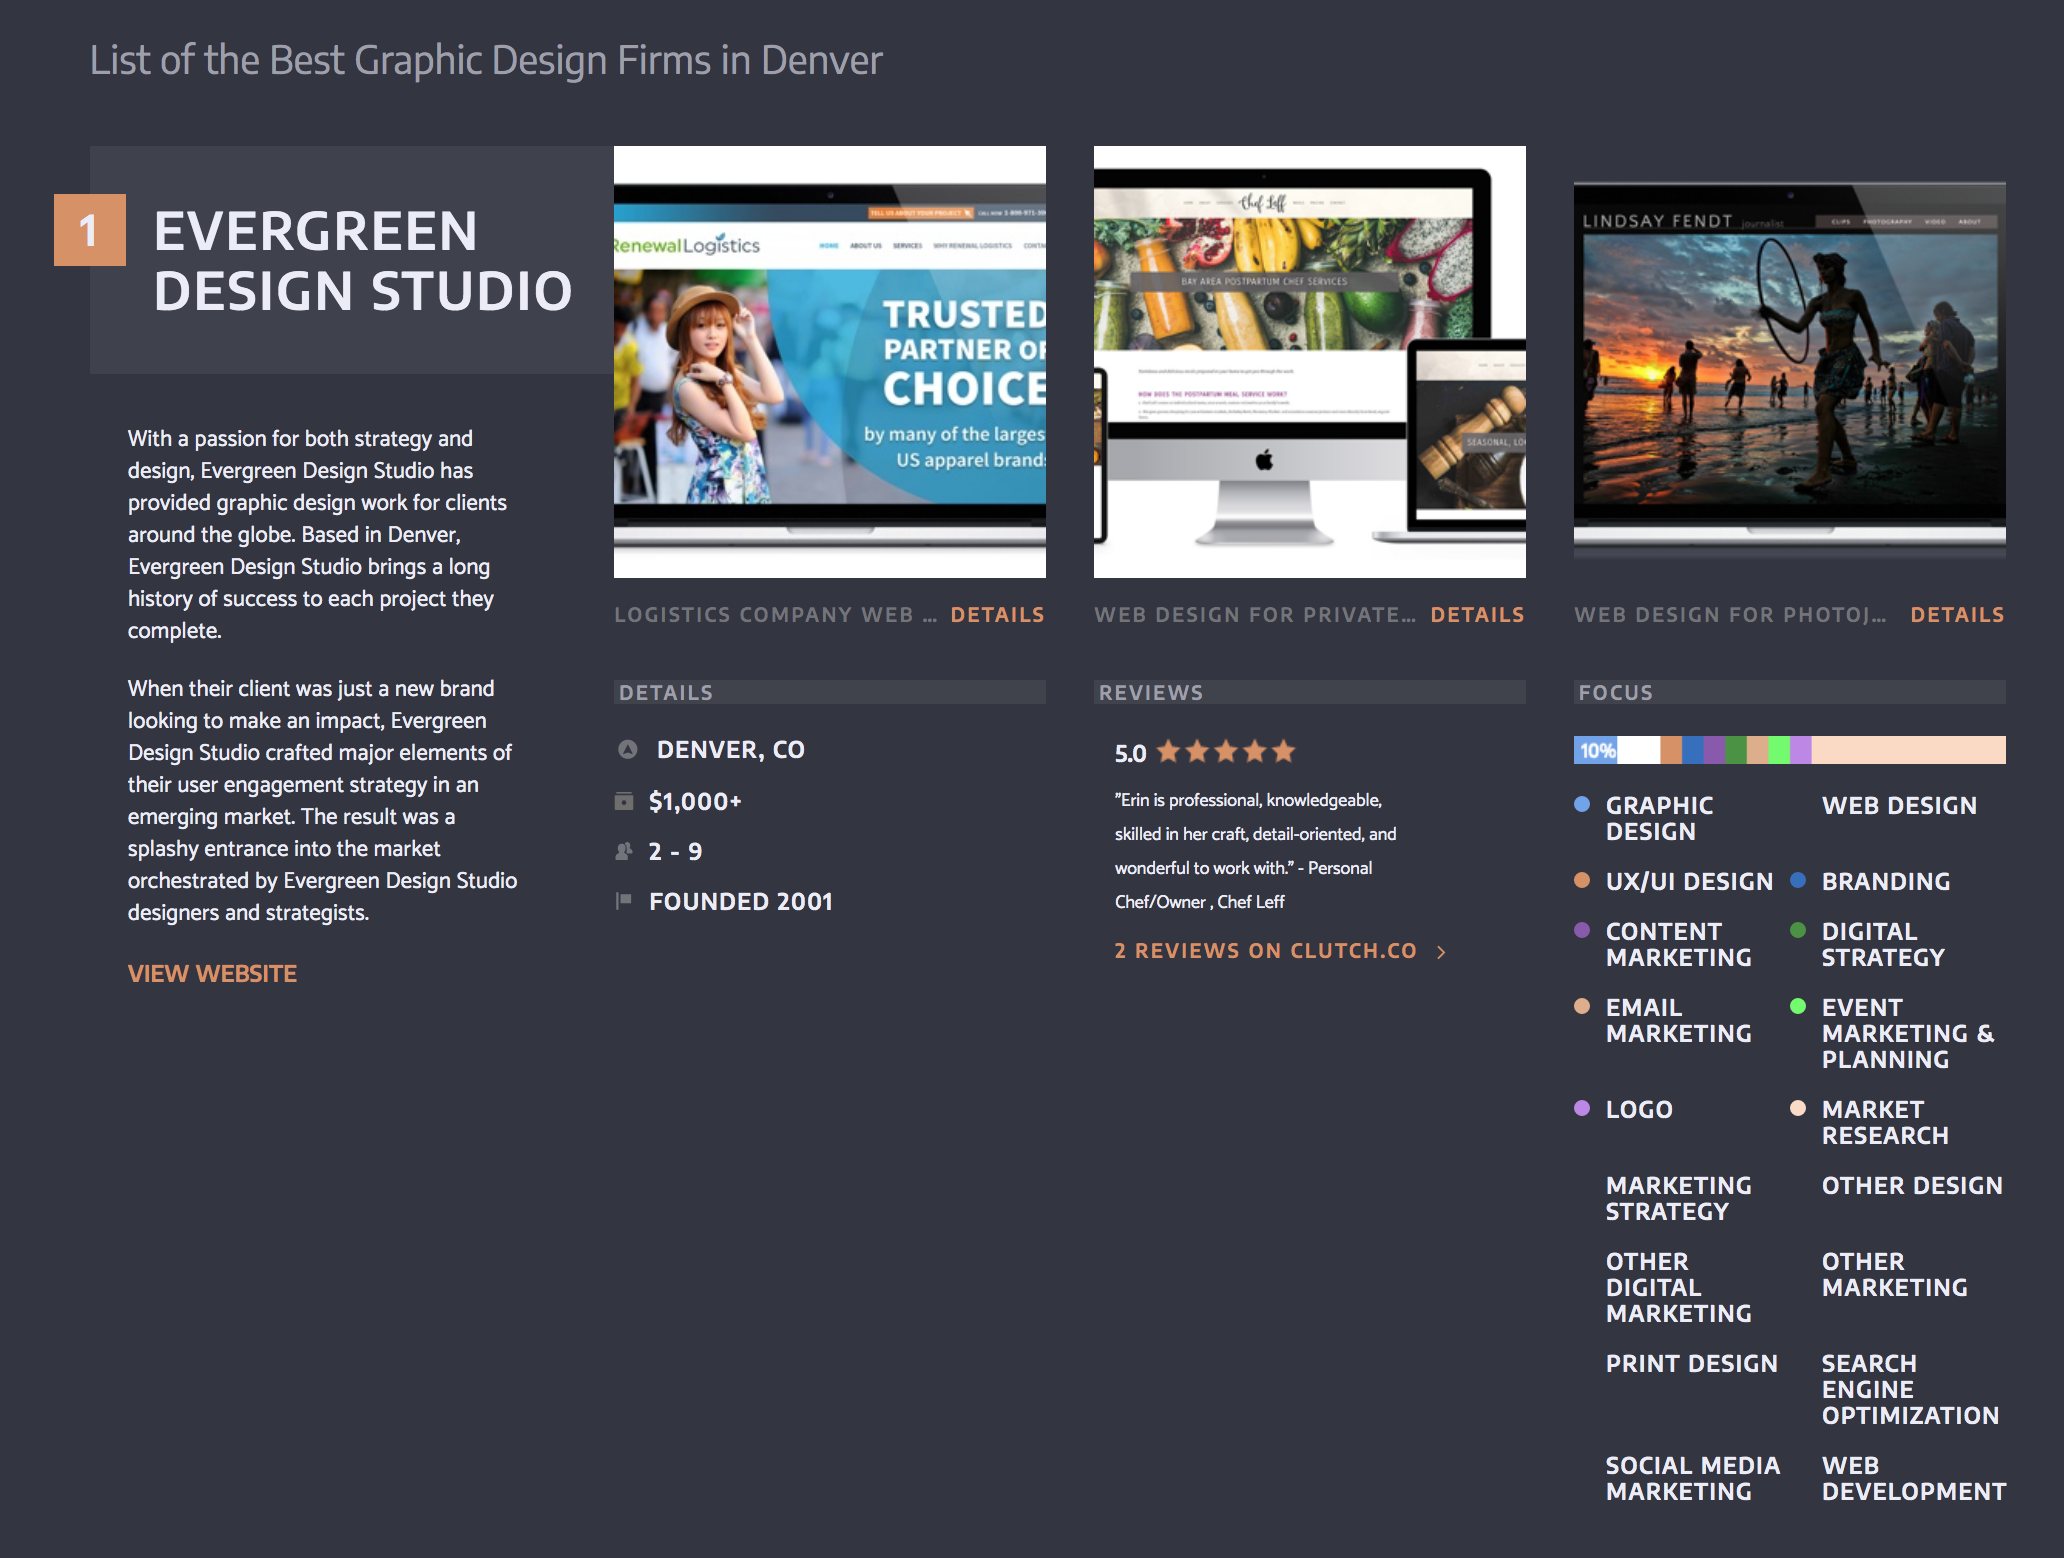 number one best graphic design company in denver, colorado, awarded by portfolio ranking site